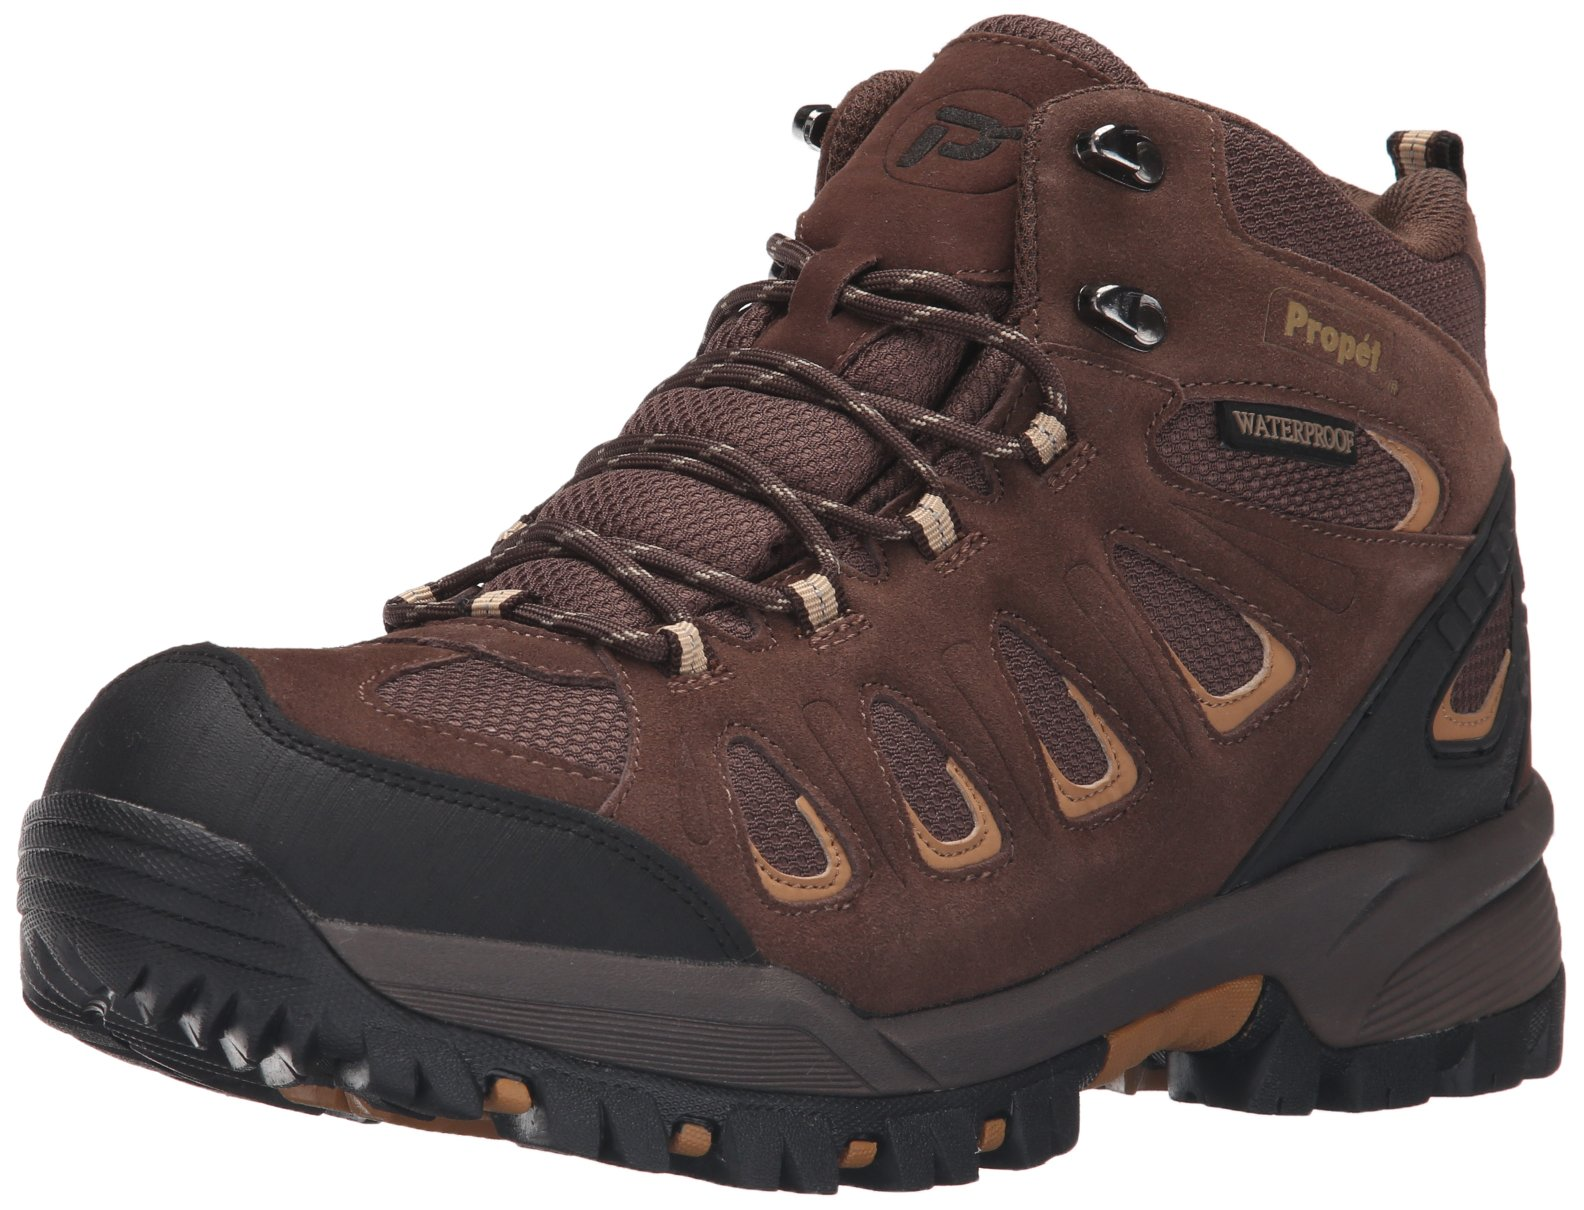 Propet Men's Ridge Walker Hiking Boot, Brown, 12 XX (5E)